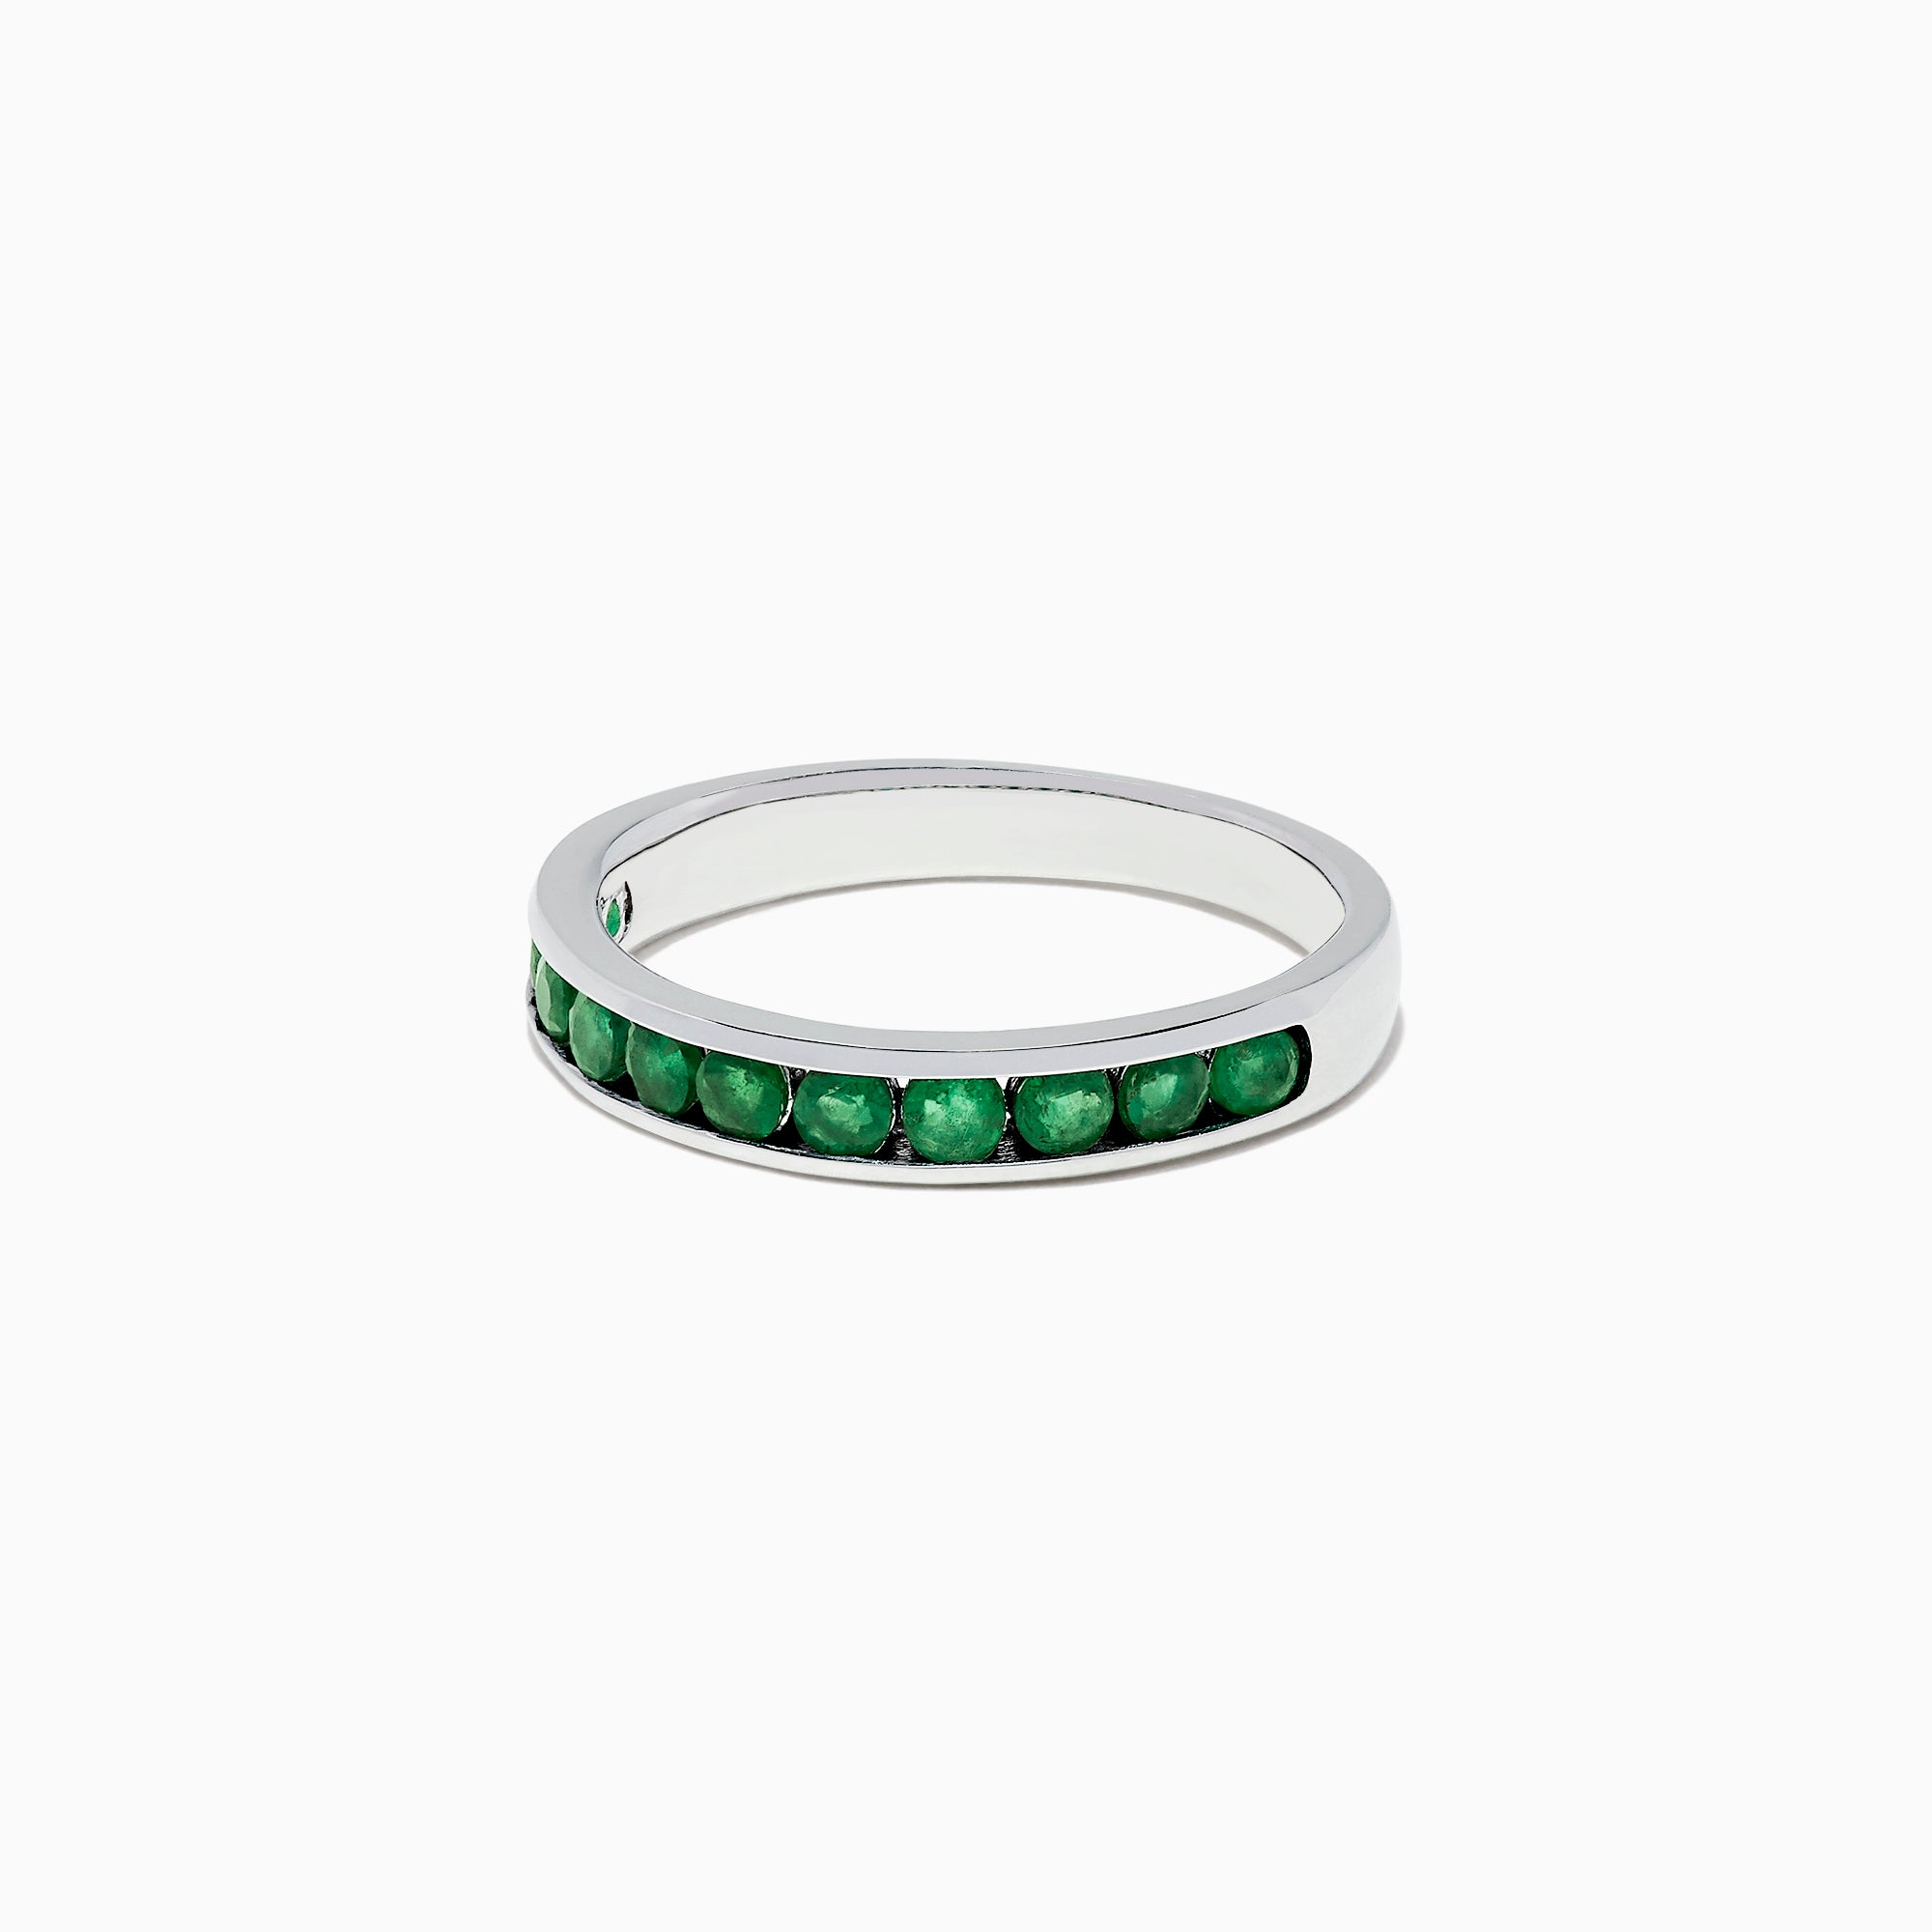 Effy Brasilica 14K White Gold Channel Set Emerald Ring, 0.65 TCW